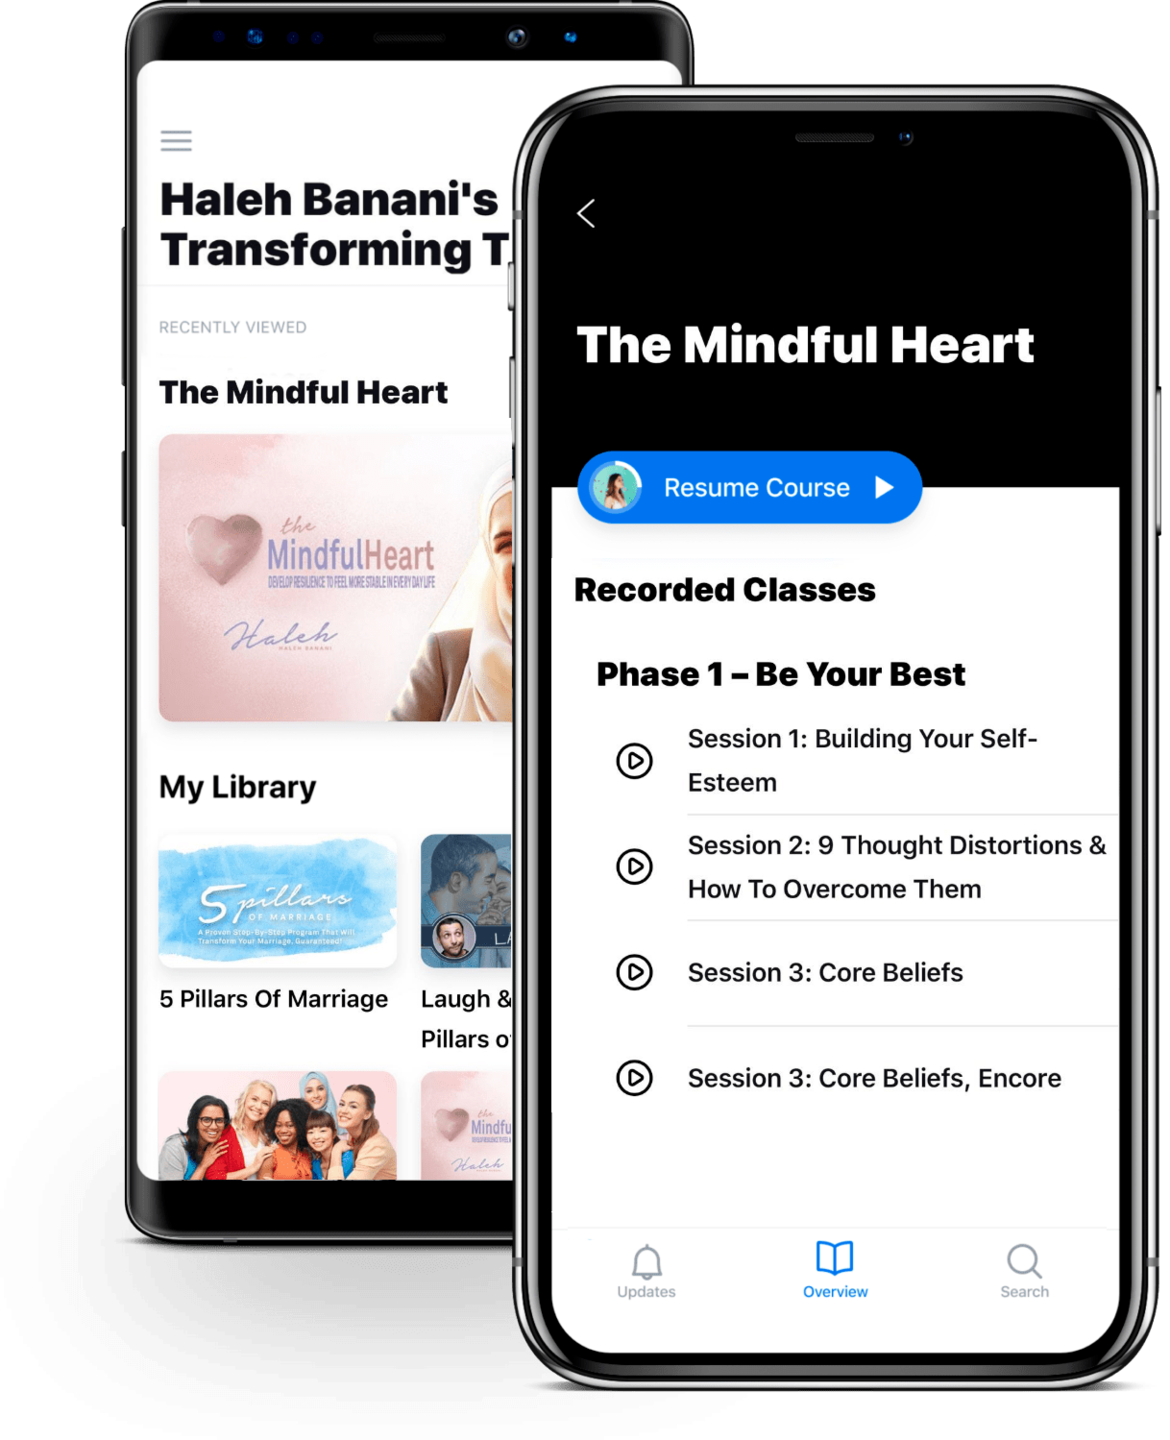 Haleh Banani's Courses IOS and Android App